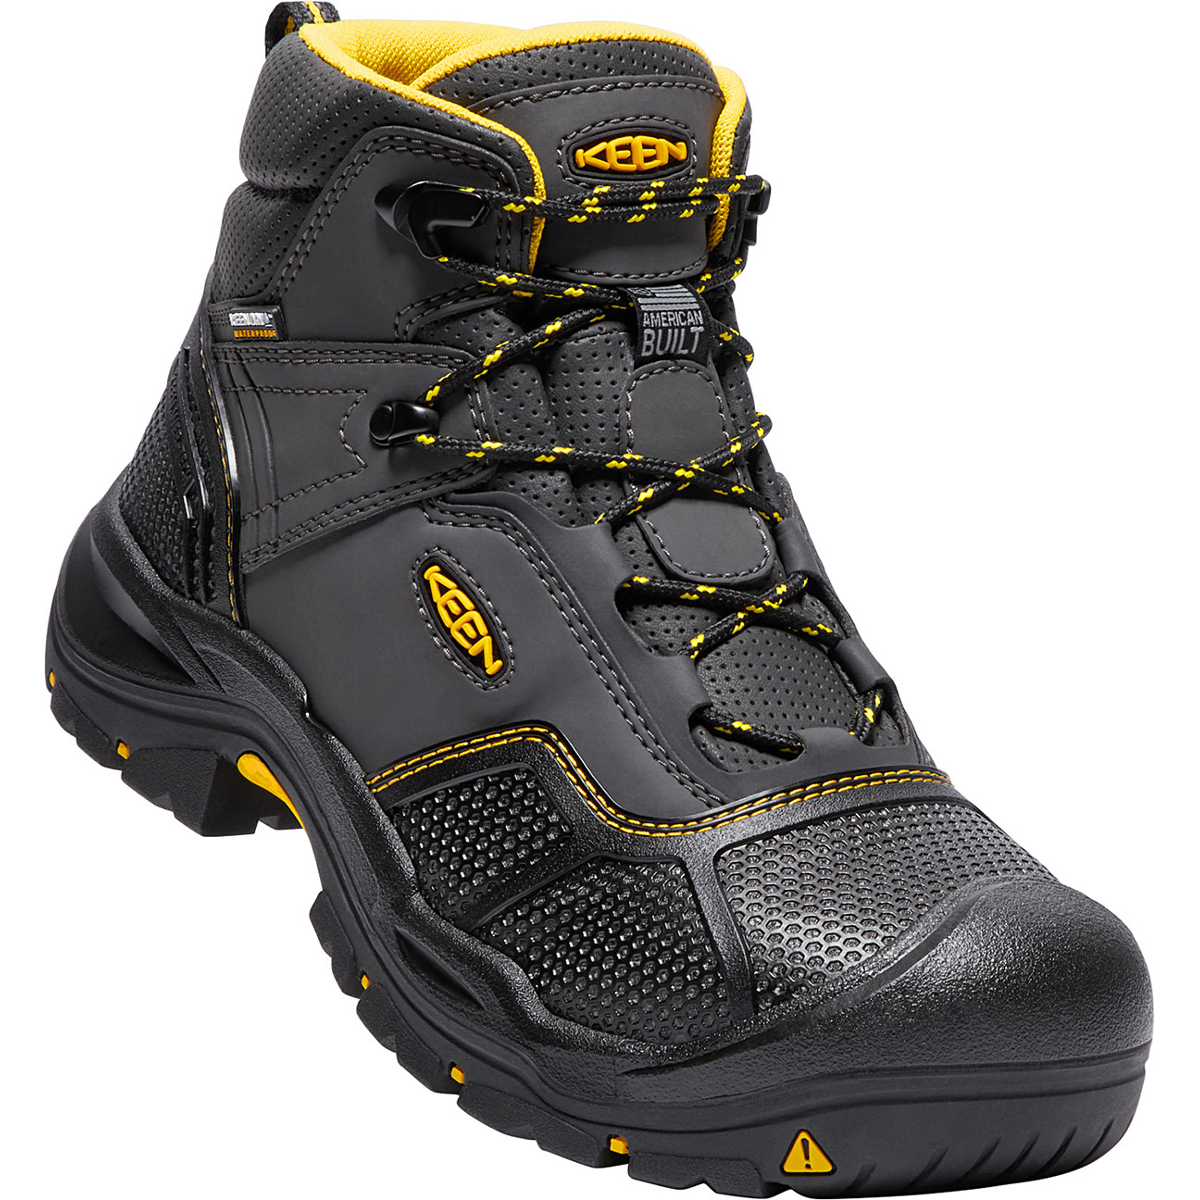 Keen Men's Logandale Waterproof Steel Toe Boot - Black, 8.5